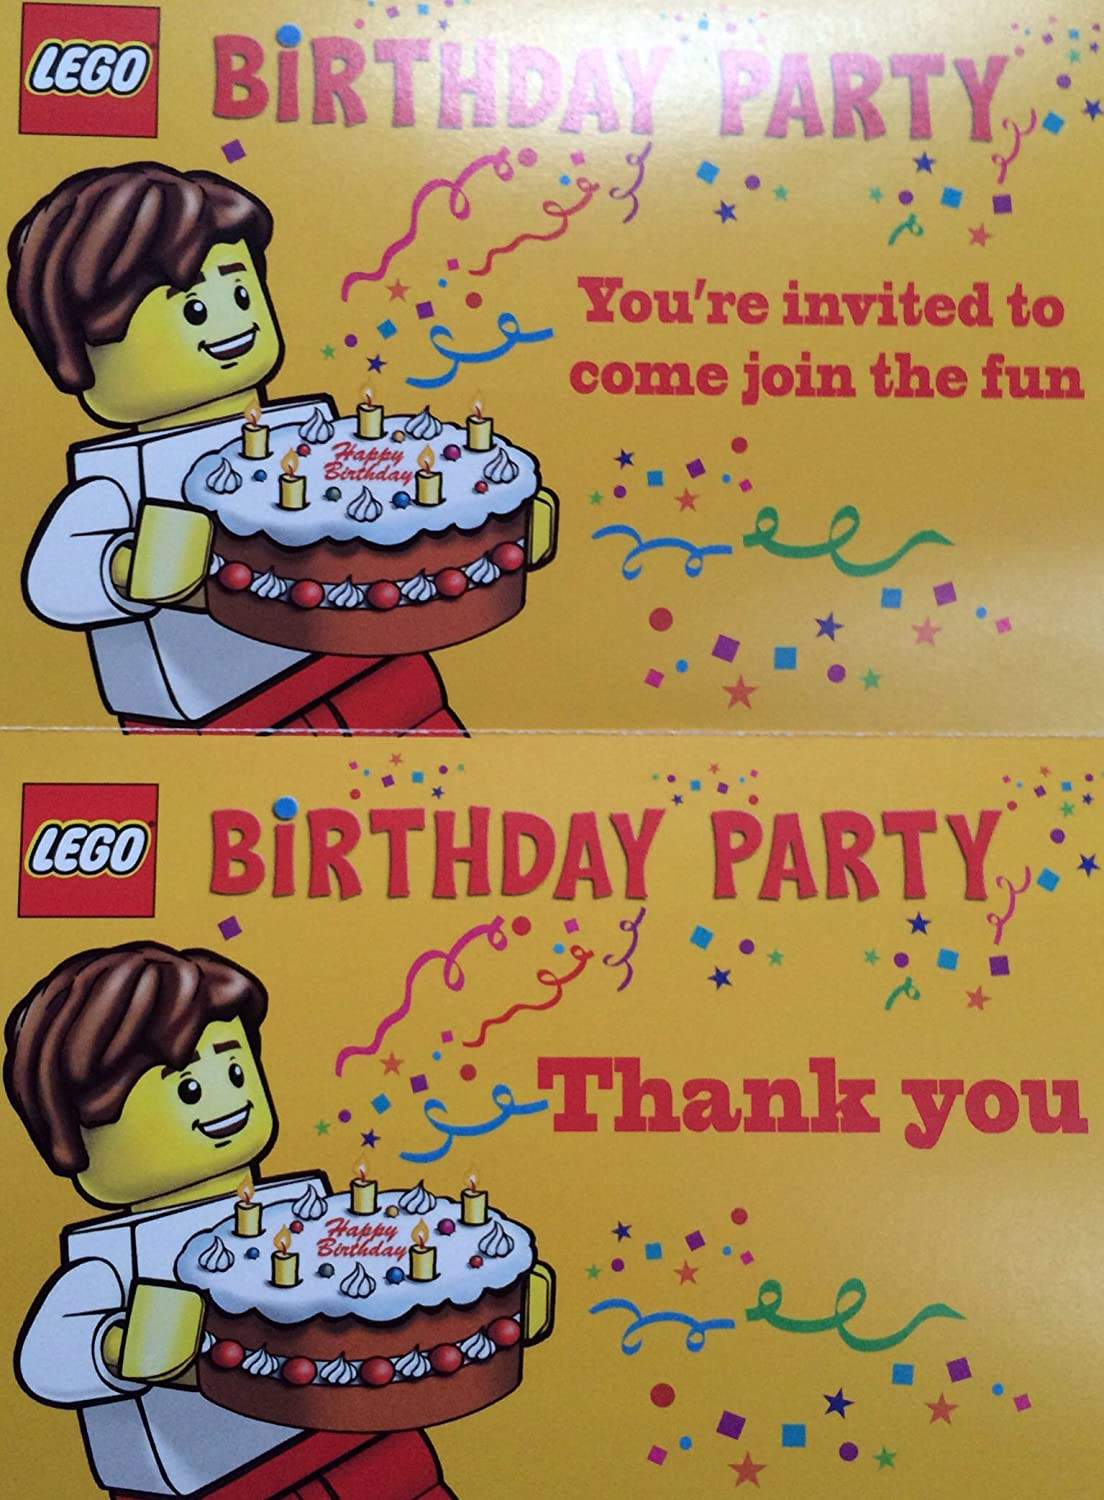 Amazon Lego Birthday Party Invitations Pack of 10 – Packs of Party Invitations